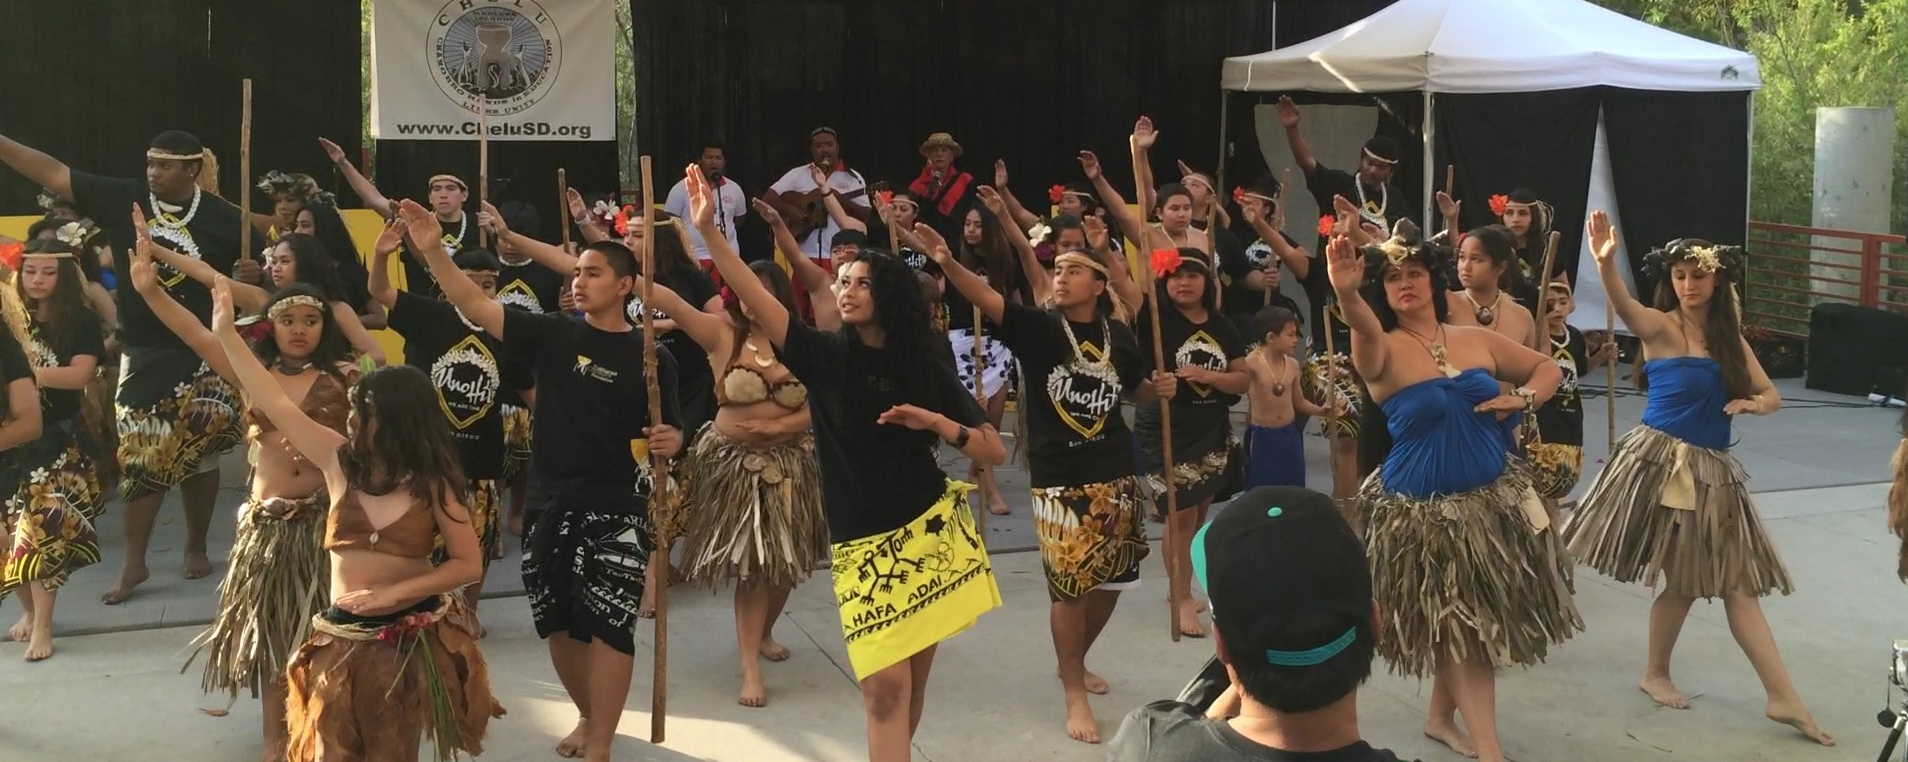 Chamorro dance groups come together to perform as one as the finale for the launch of the Guam Chamorro Dance Academy in San Diego